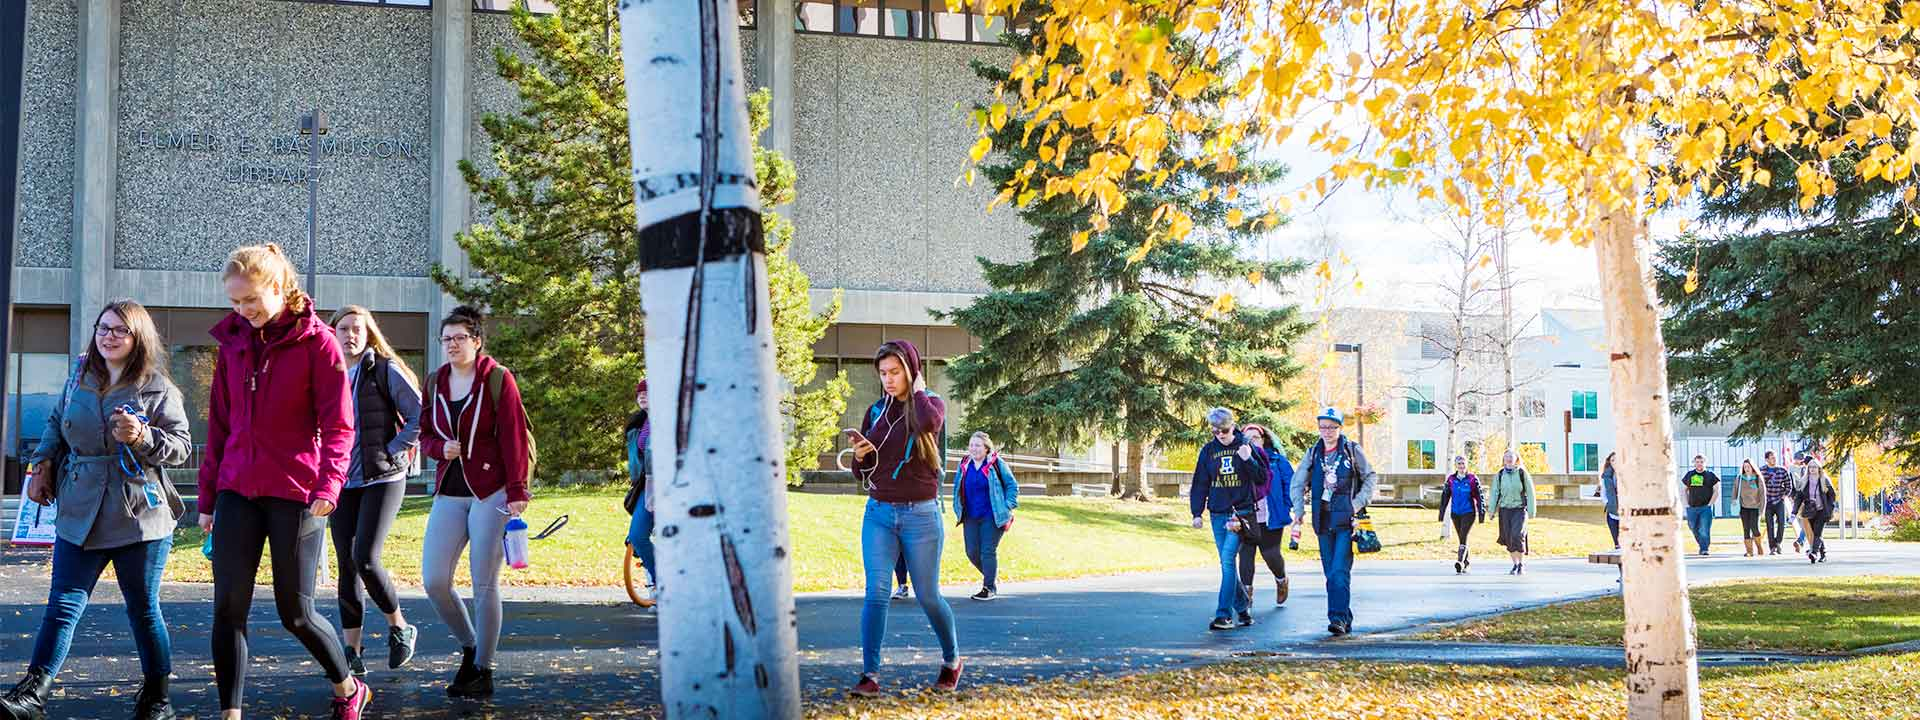 Students walking past the Rasmuson Library on a fall afternoon